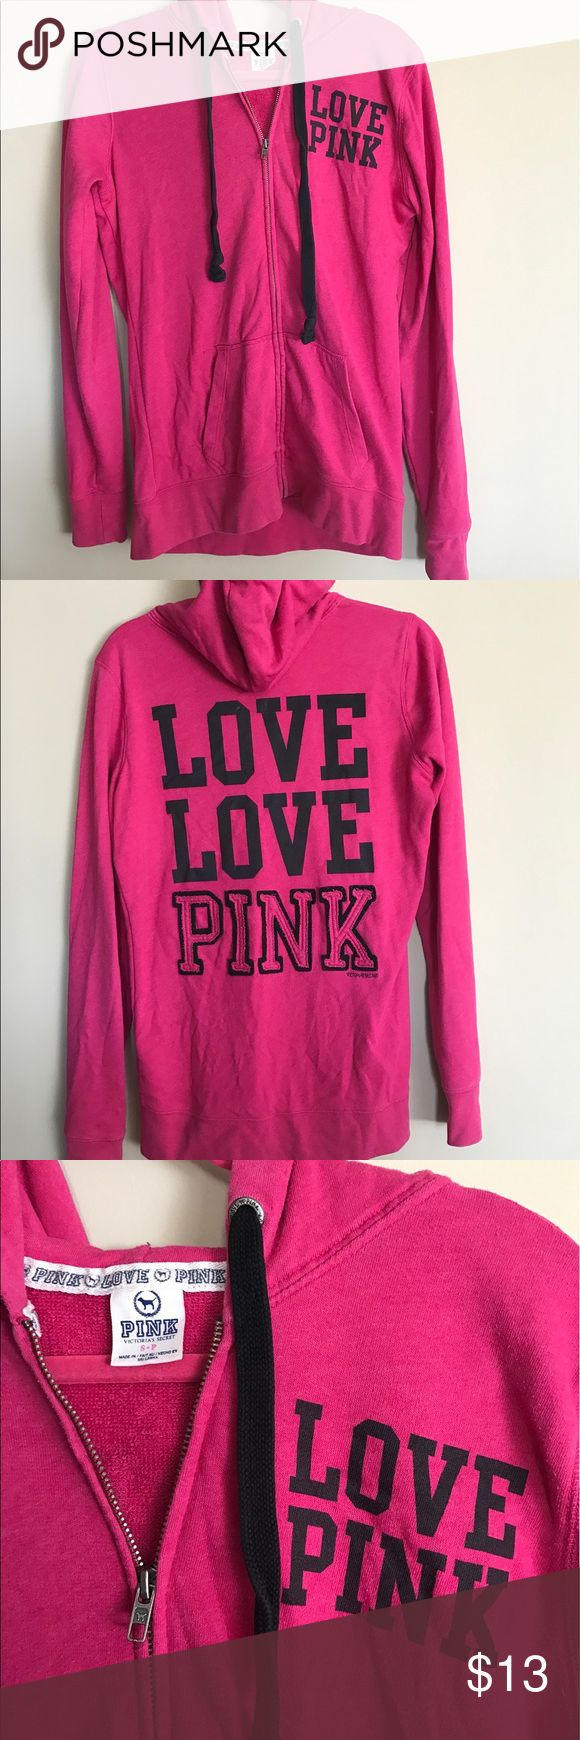 Hot pink, PINK zip up hoodie. Hot pink, Victoria's Secret PINK, zip up hoodie. Lightly worn. Has small bleach spot on left sleeve. PINK Victoria's Secret Tops Sweatshirts & Hoodies